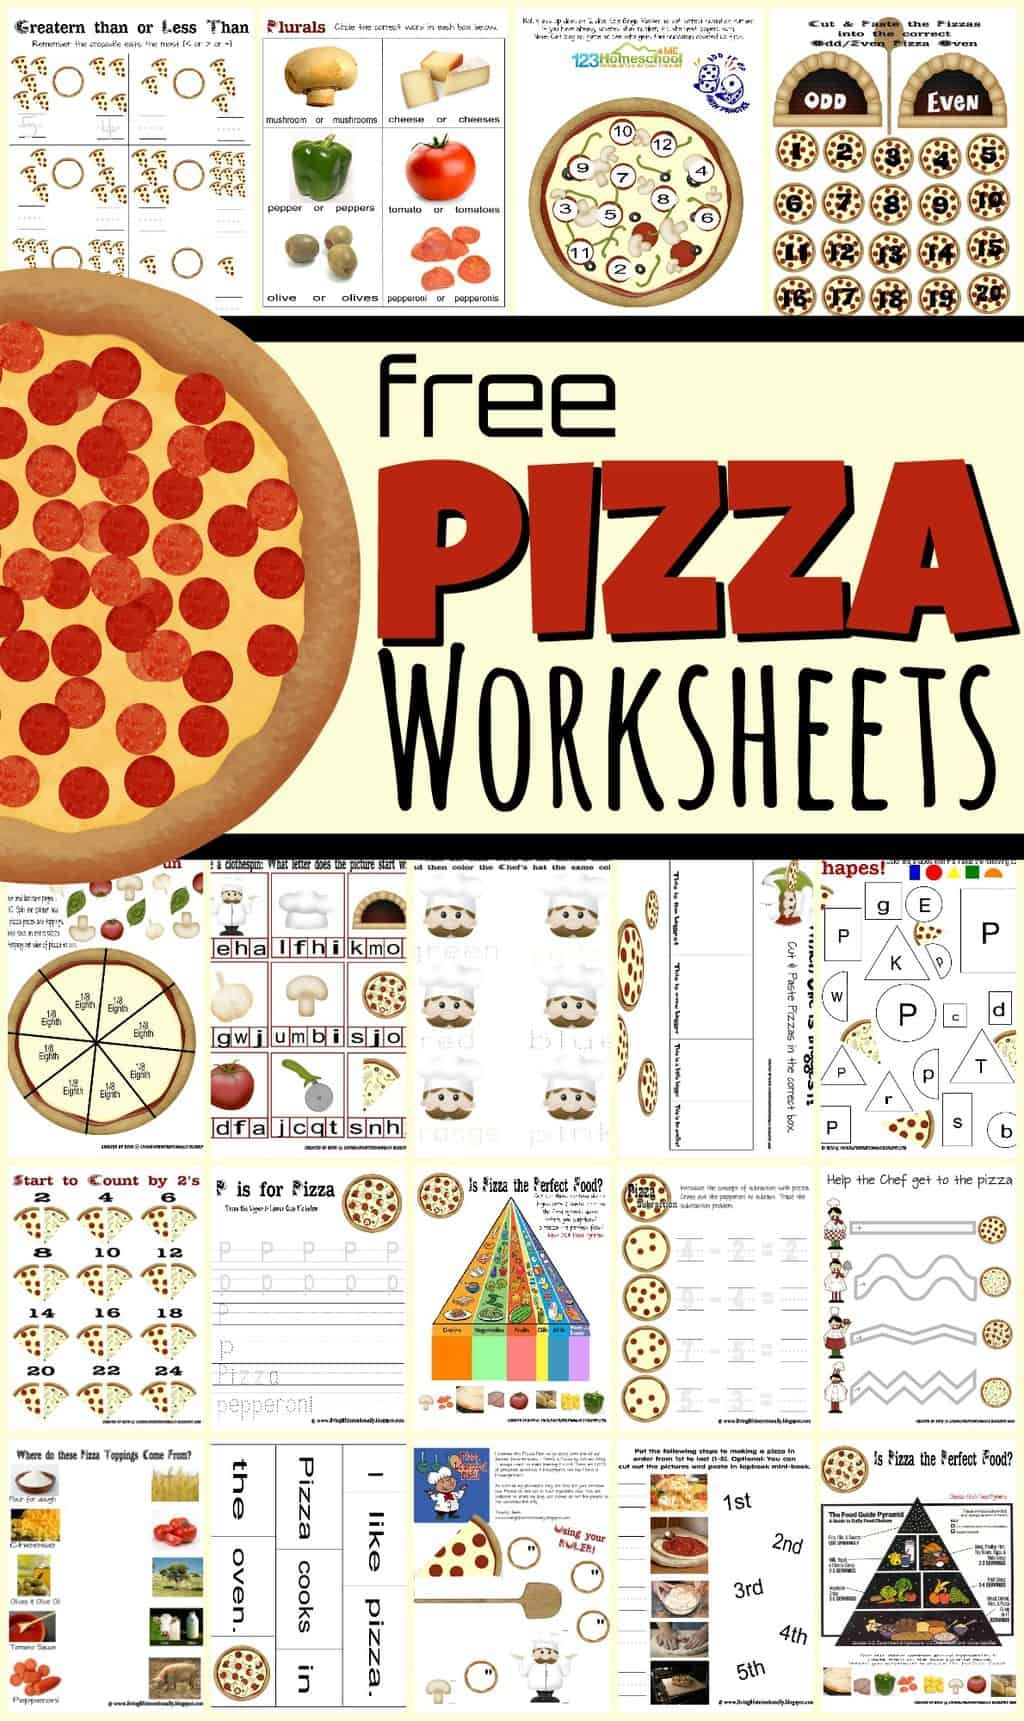 Free Pizza Worksheets For Kids In 2021 Free Preschool Printables Worksheets For Kids Kids Worksheets Printables [ 1721 x 1024 Pixel ]